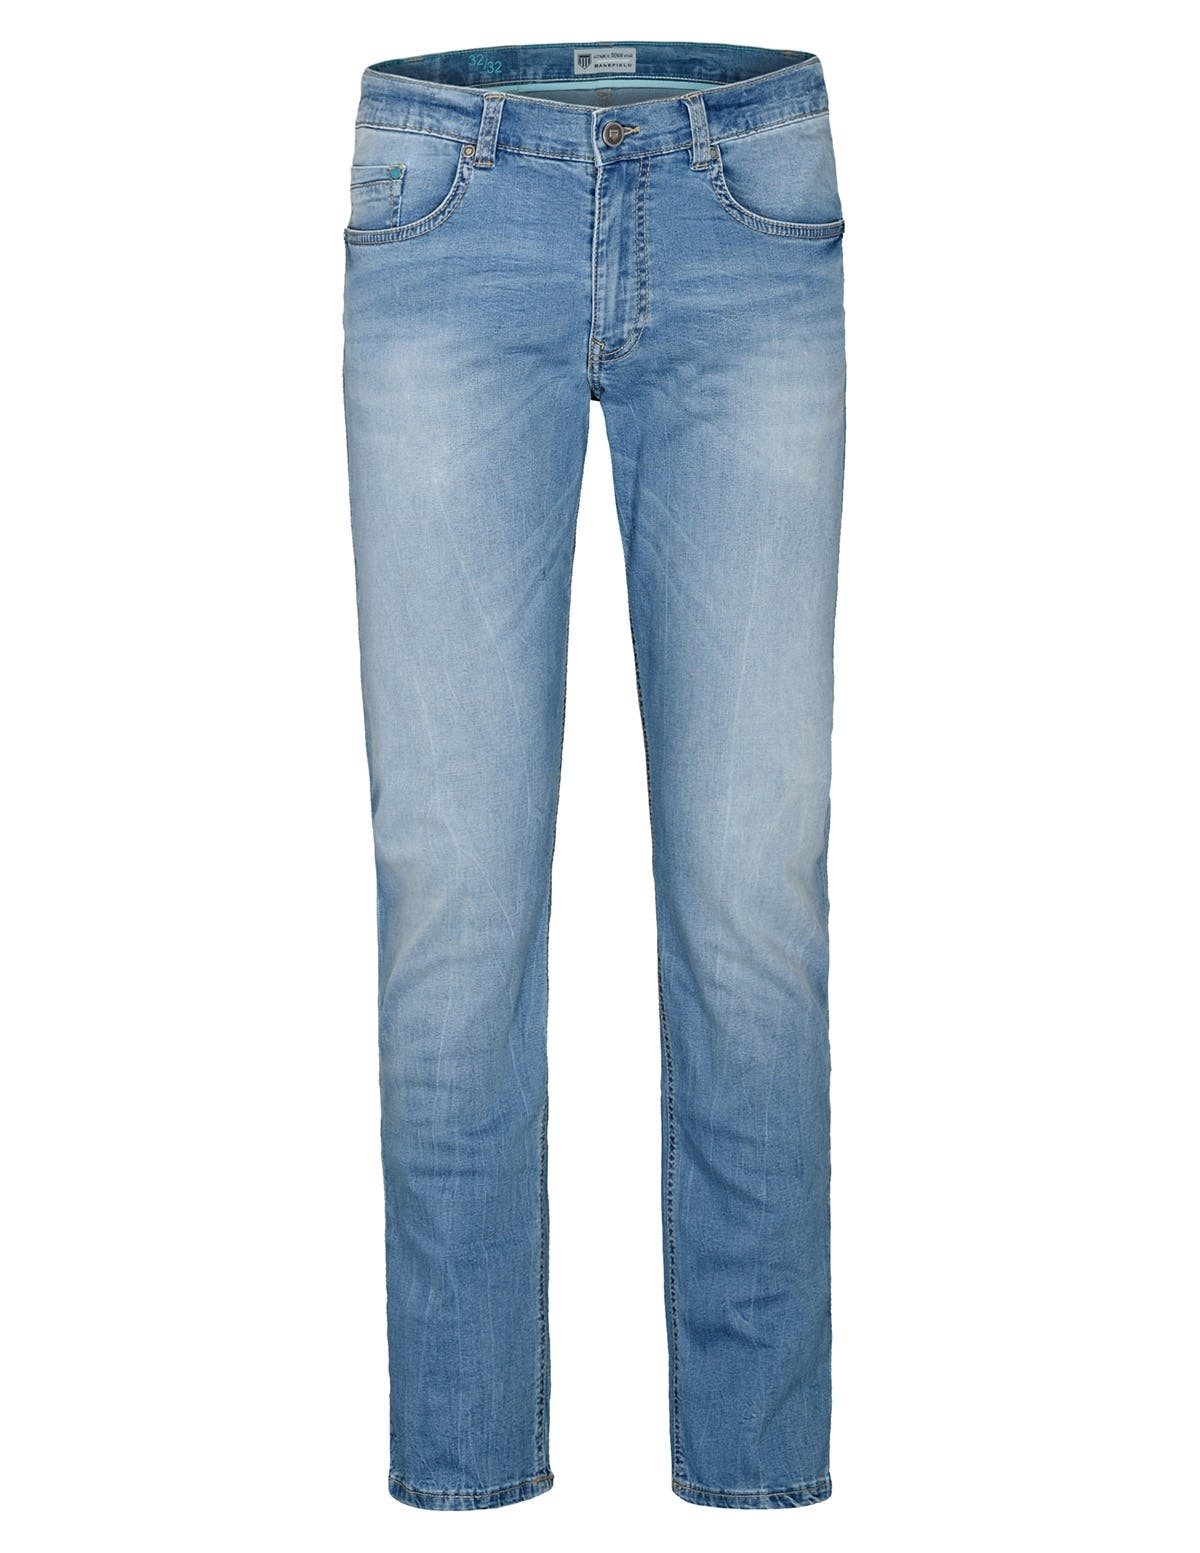 Jeans - Light Blue